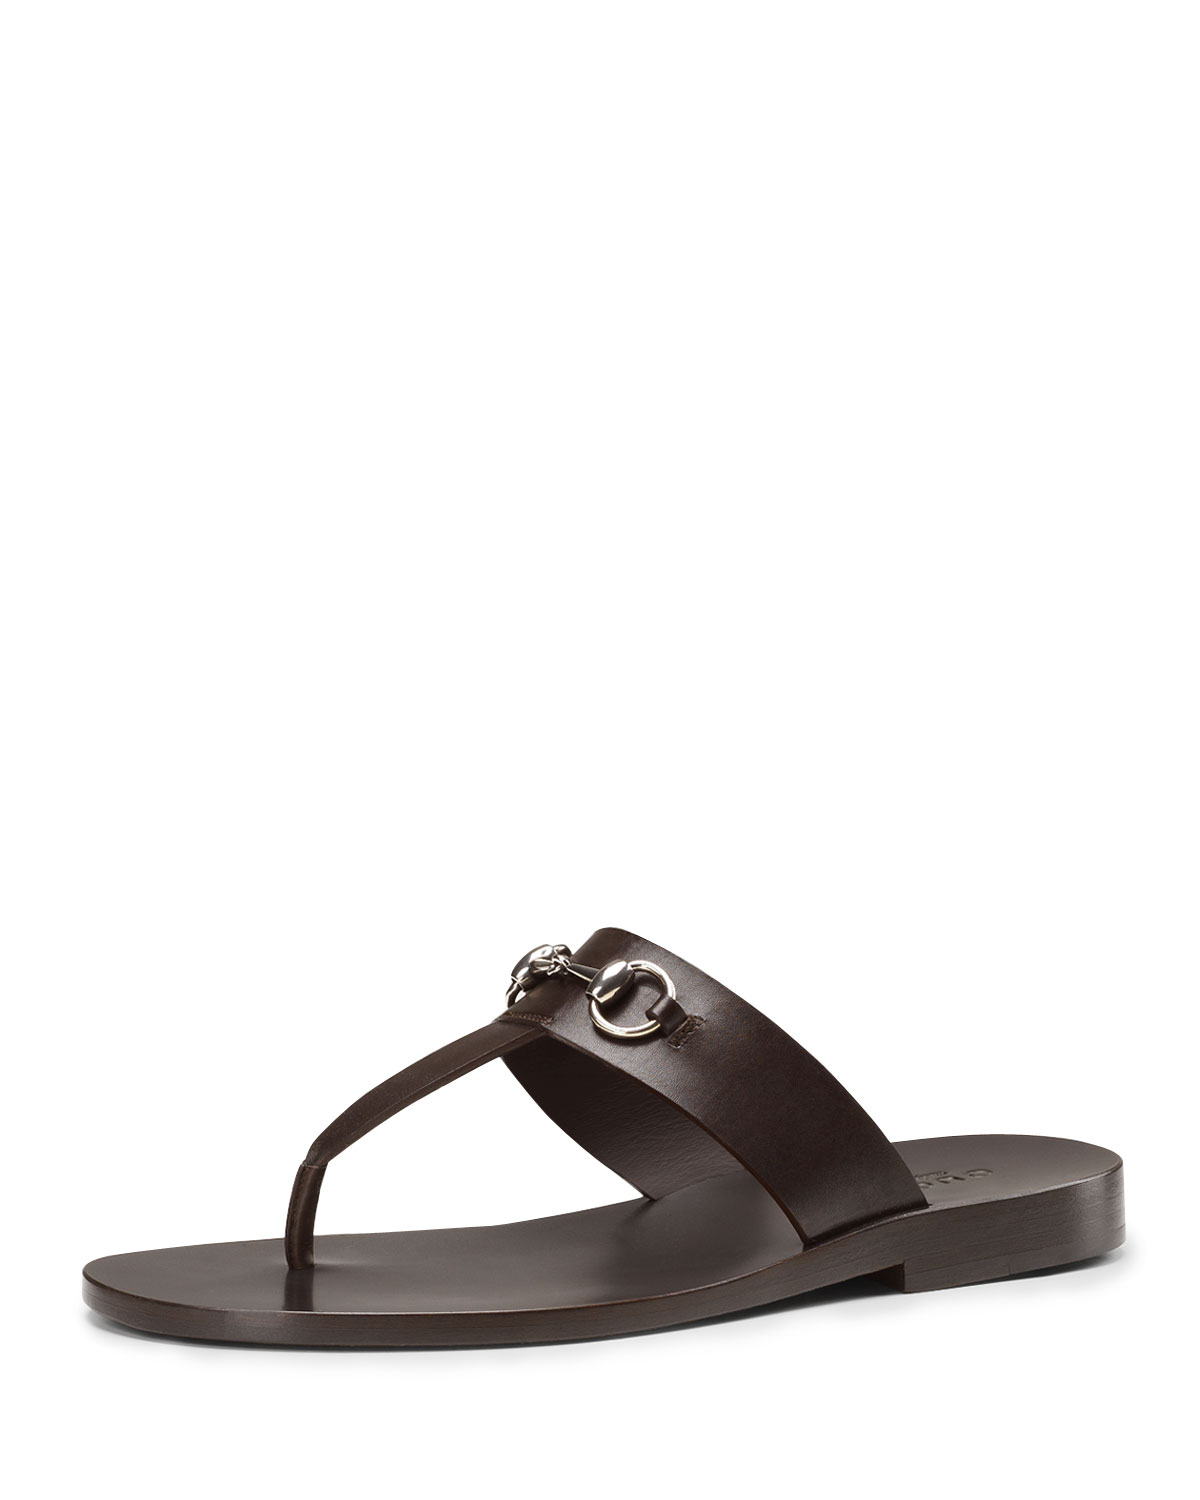 Gucci Leather Horsebit Thong Sandal, Brown